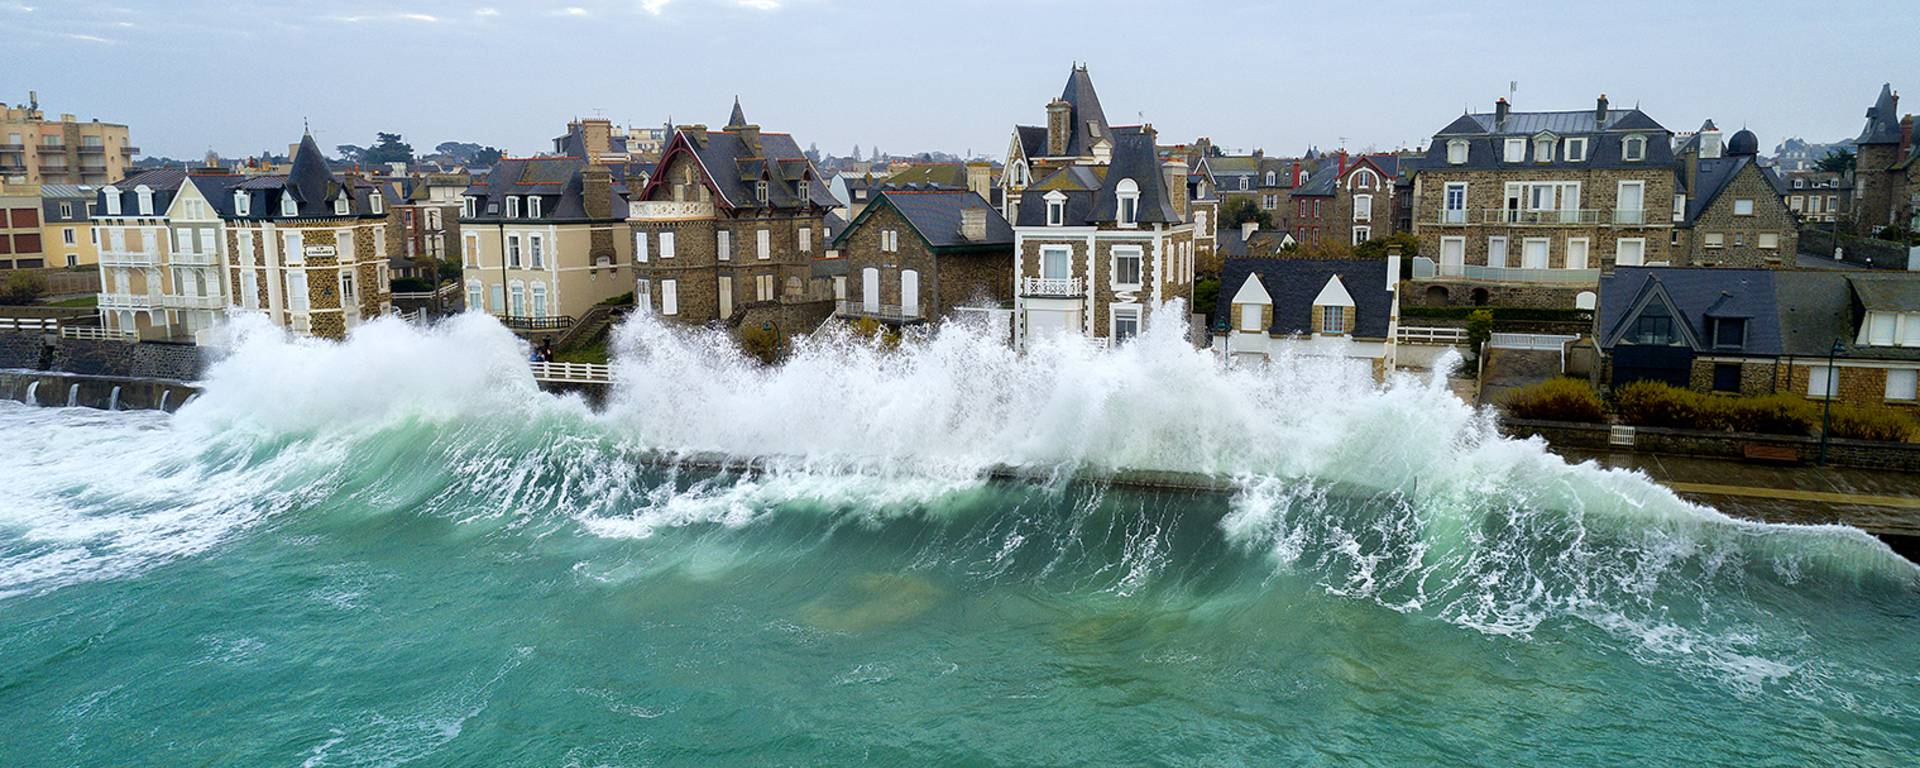 High tides of Saint-Malo ©Emmanuel-Duclos-Easy-Ride